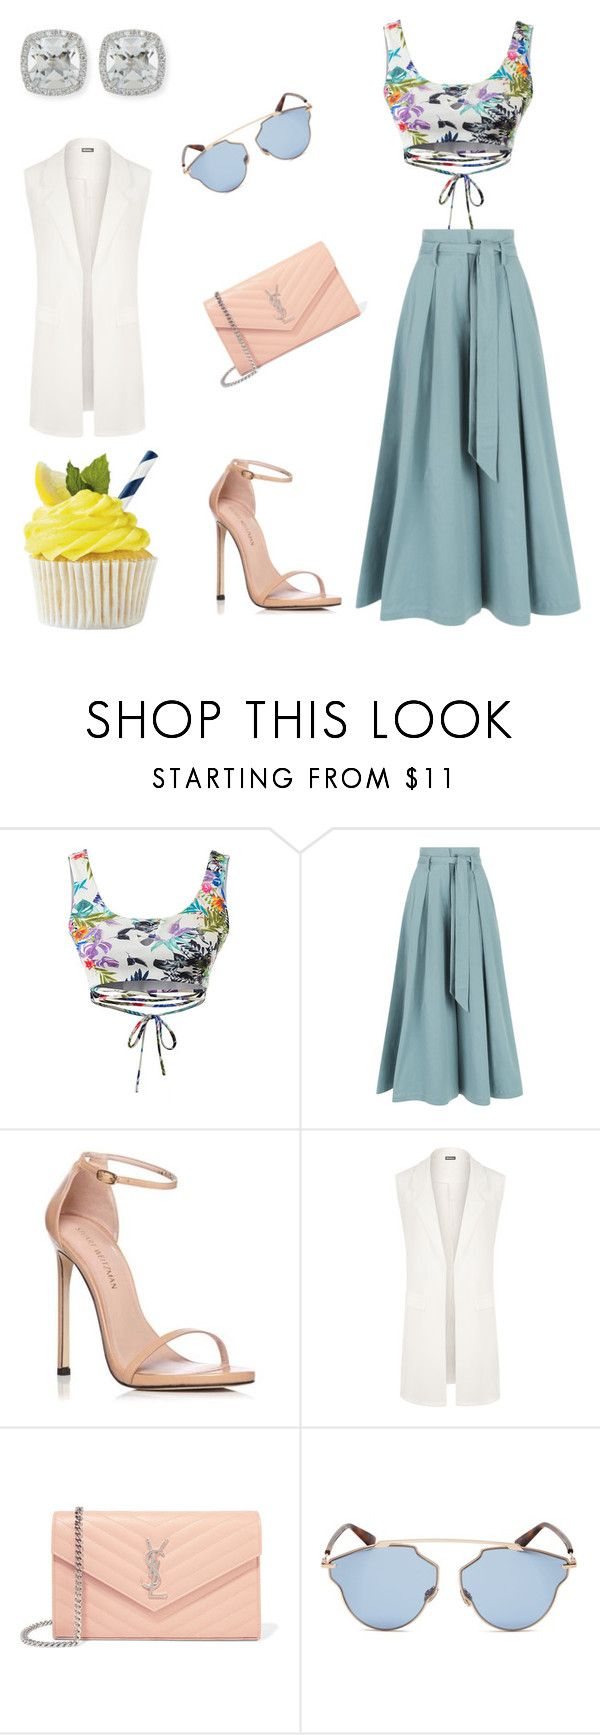 """""""Spring it together"""" by kimoneforbidden ❤ liked on Polyvore featuring Temperley London, Stuart Weitzman, WearAll, Yves Saint Laurent, Christian Dior and Frederic Sage"""